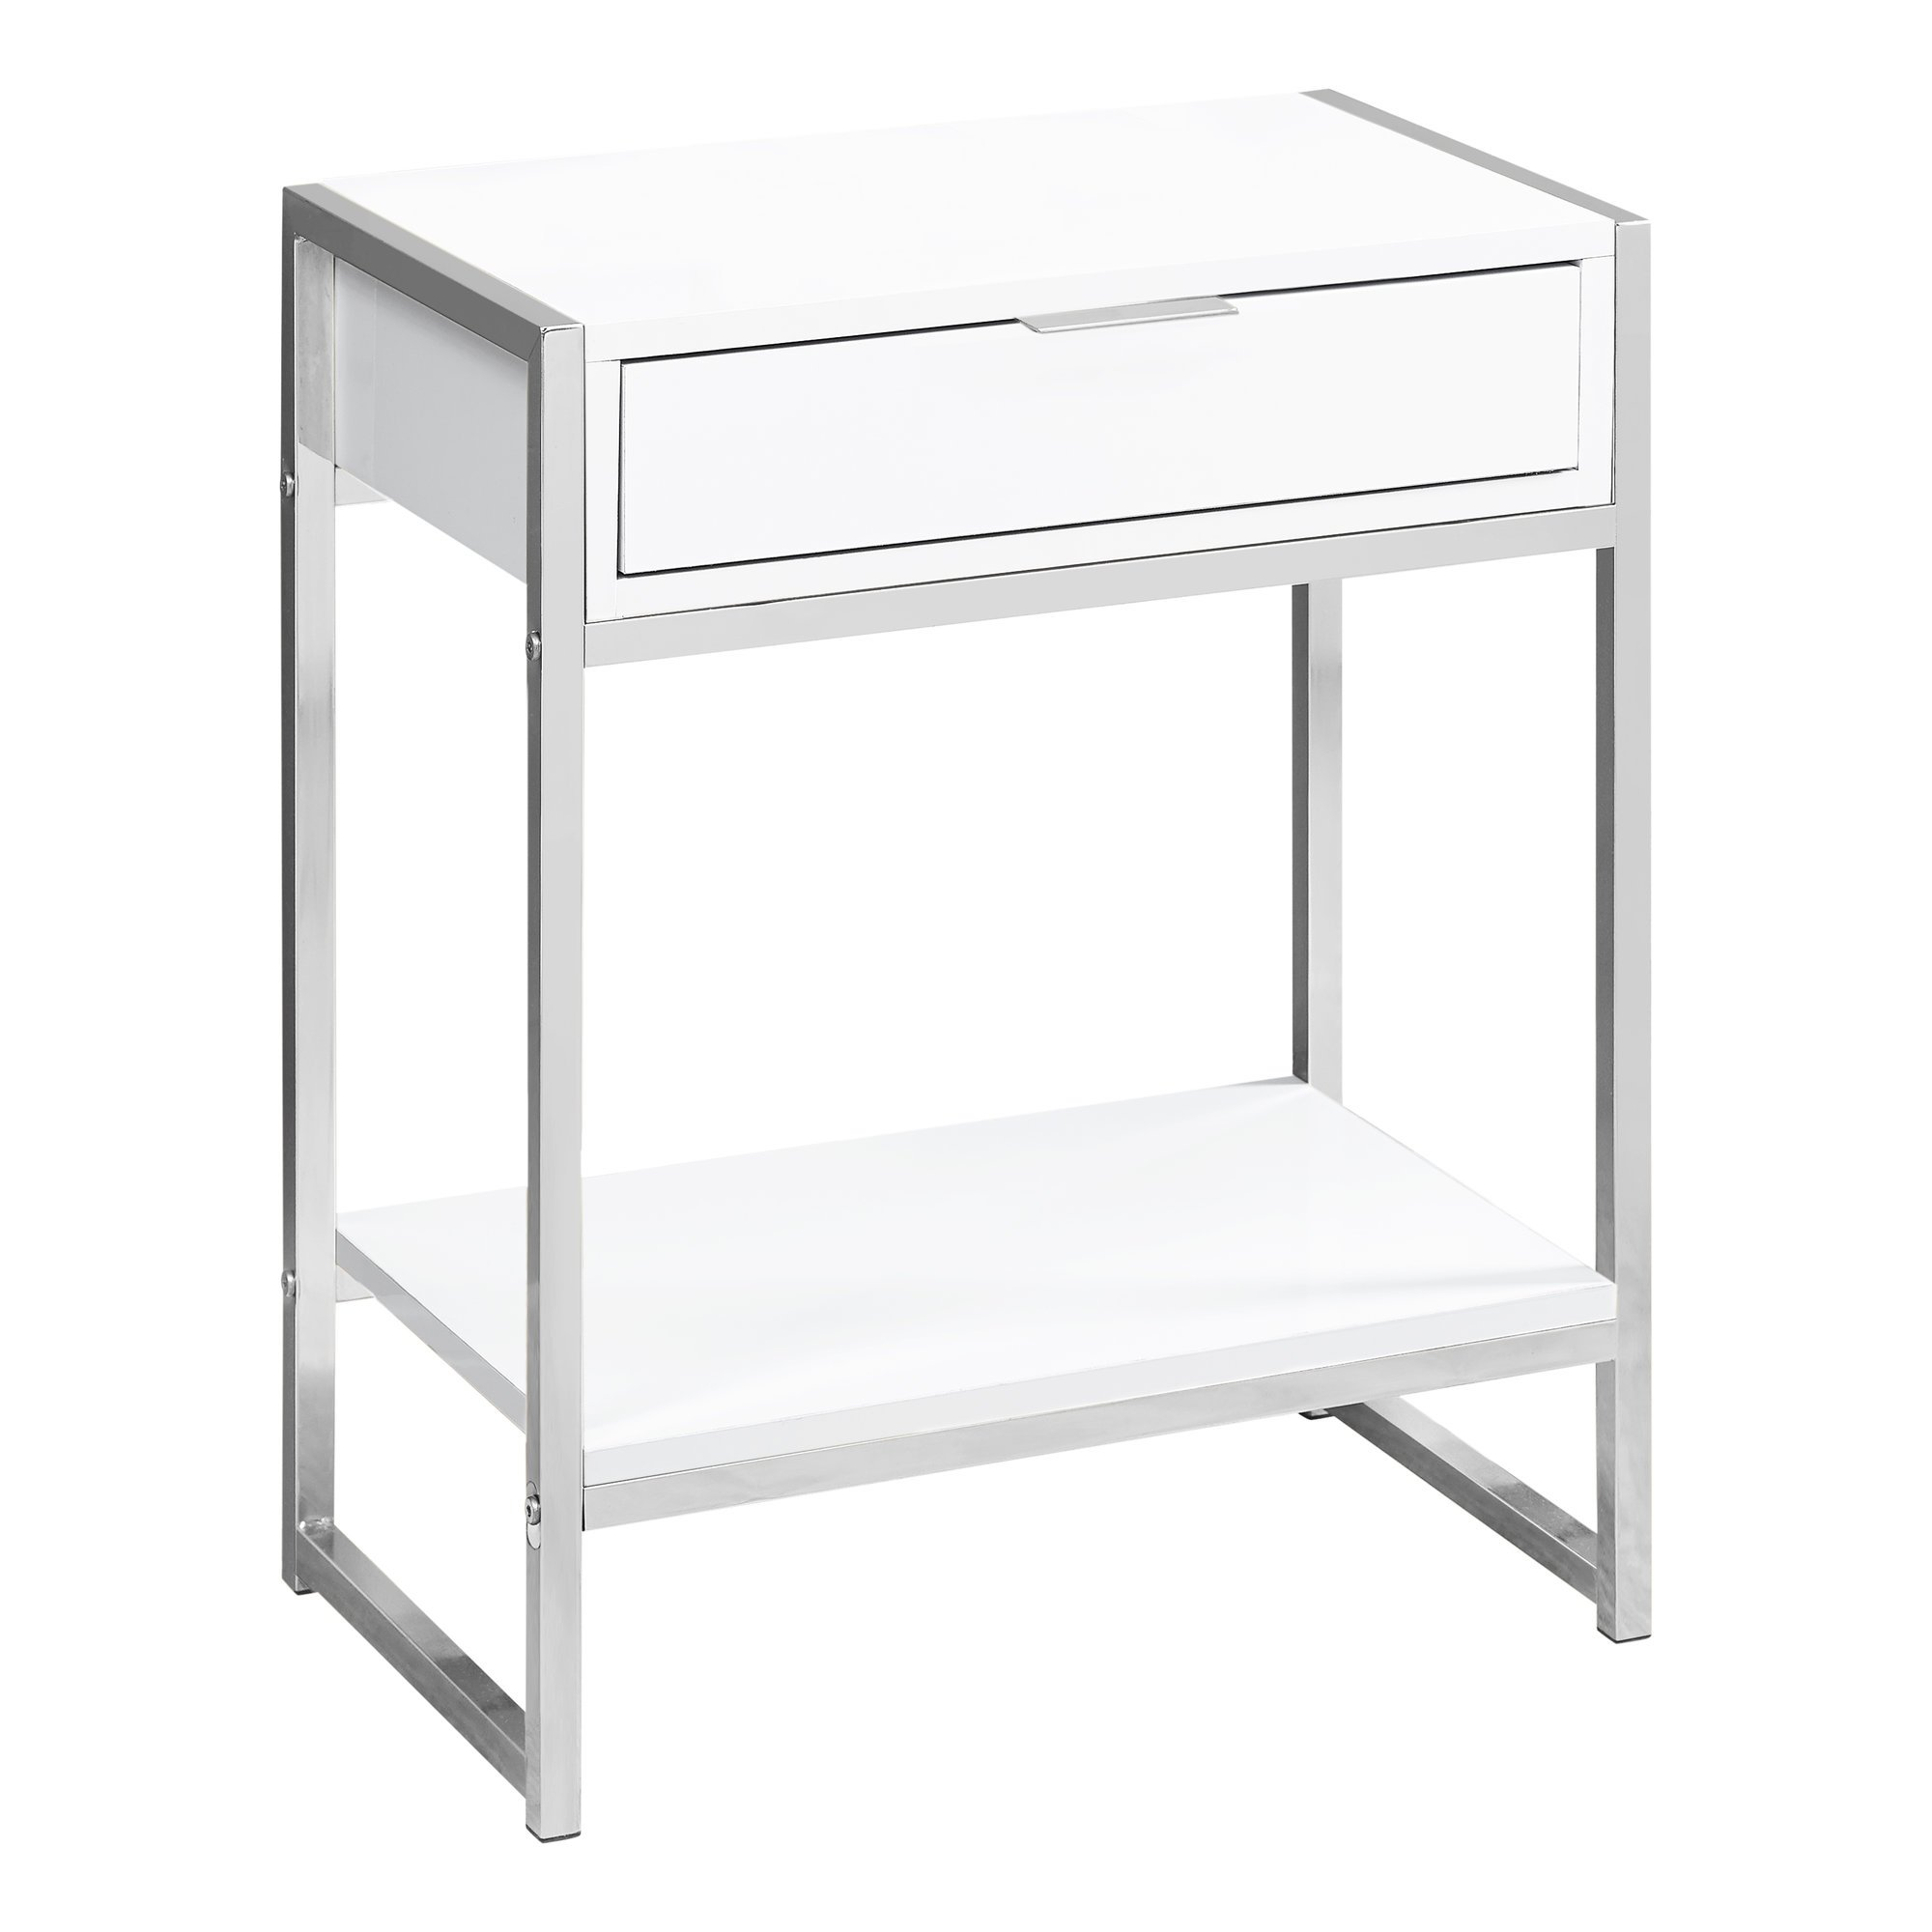 monarch particle board and mdf metal accent table white finish pine wood black mirrored chest oversized reading chair barn style coffee next corner bench dining set dorm room